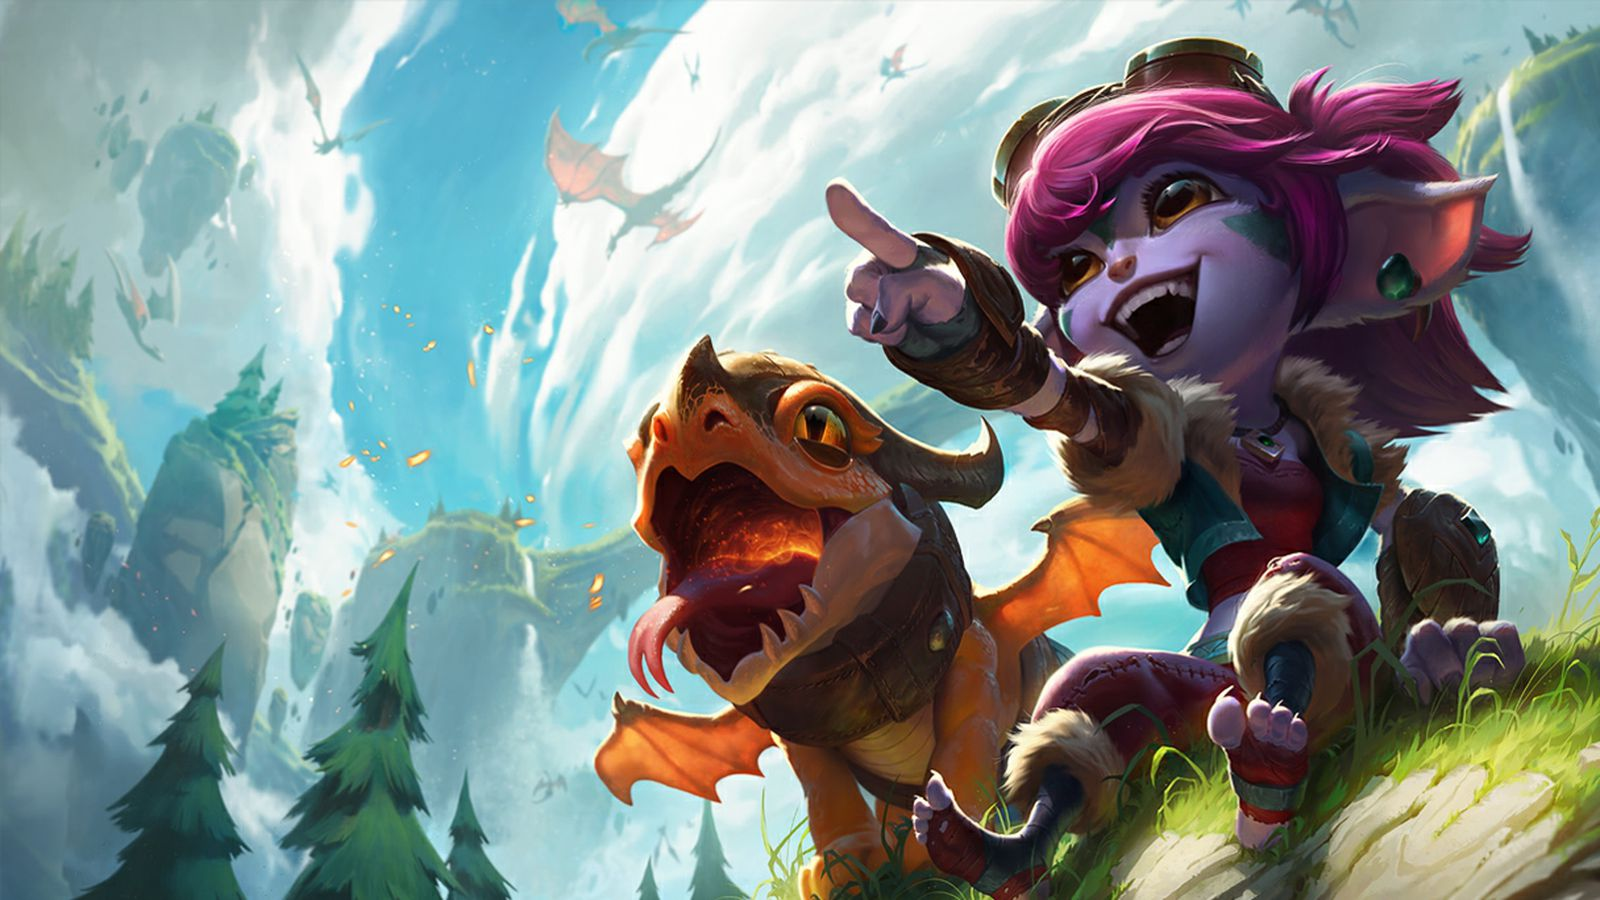 Tristana takes over Caitlyn's reign of terror in the bot lane - The Rift  Herald